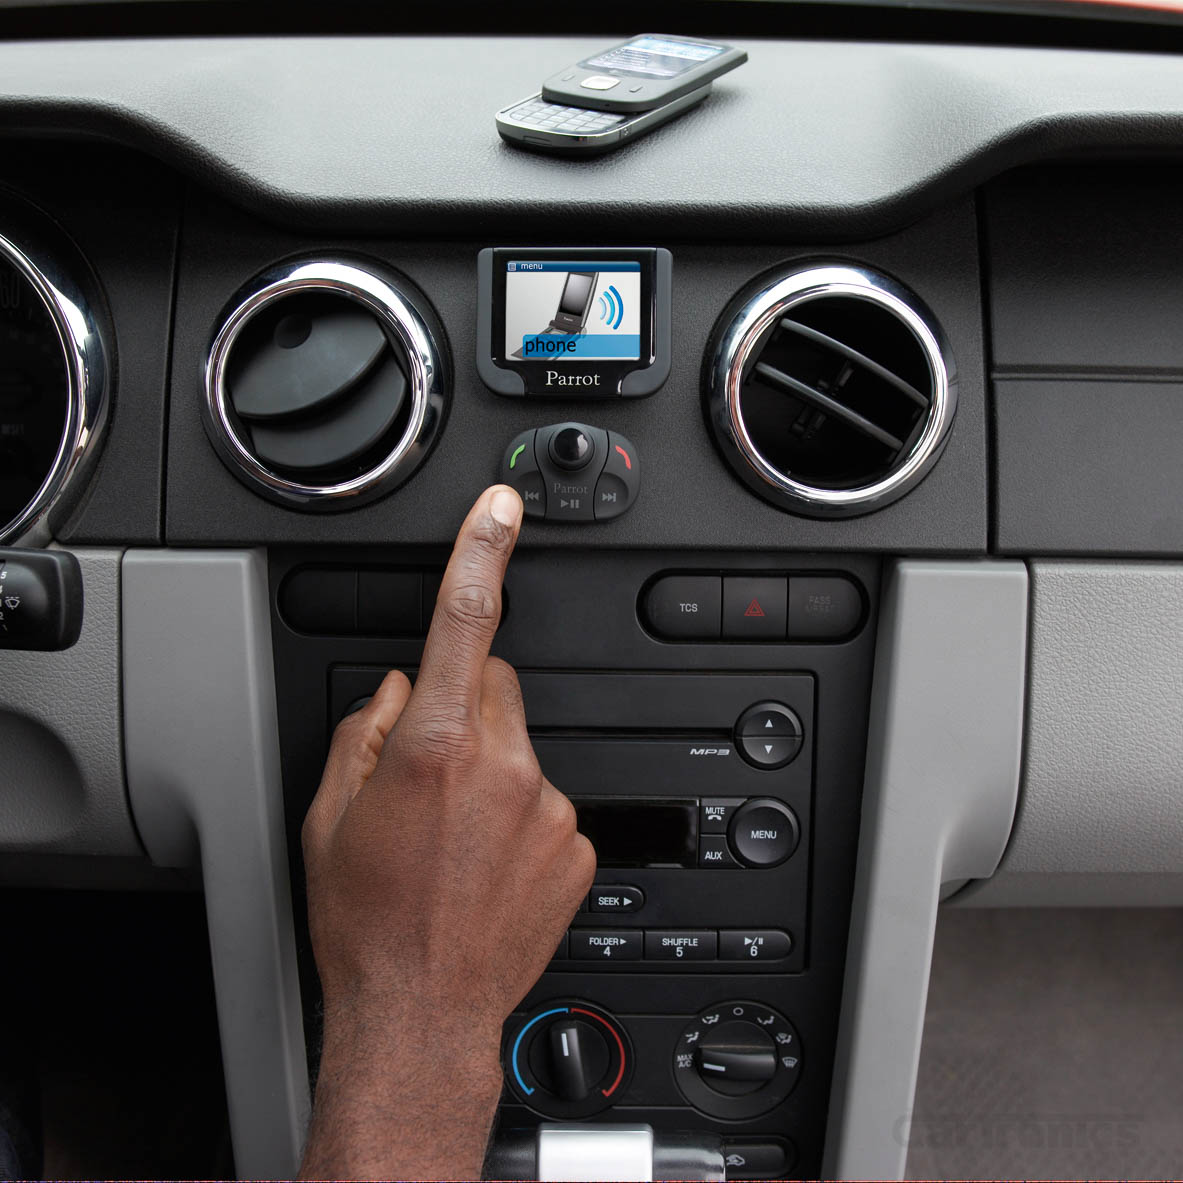 Hands Free Phone For Car Reviews